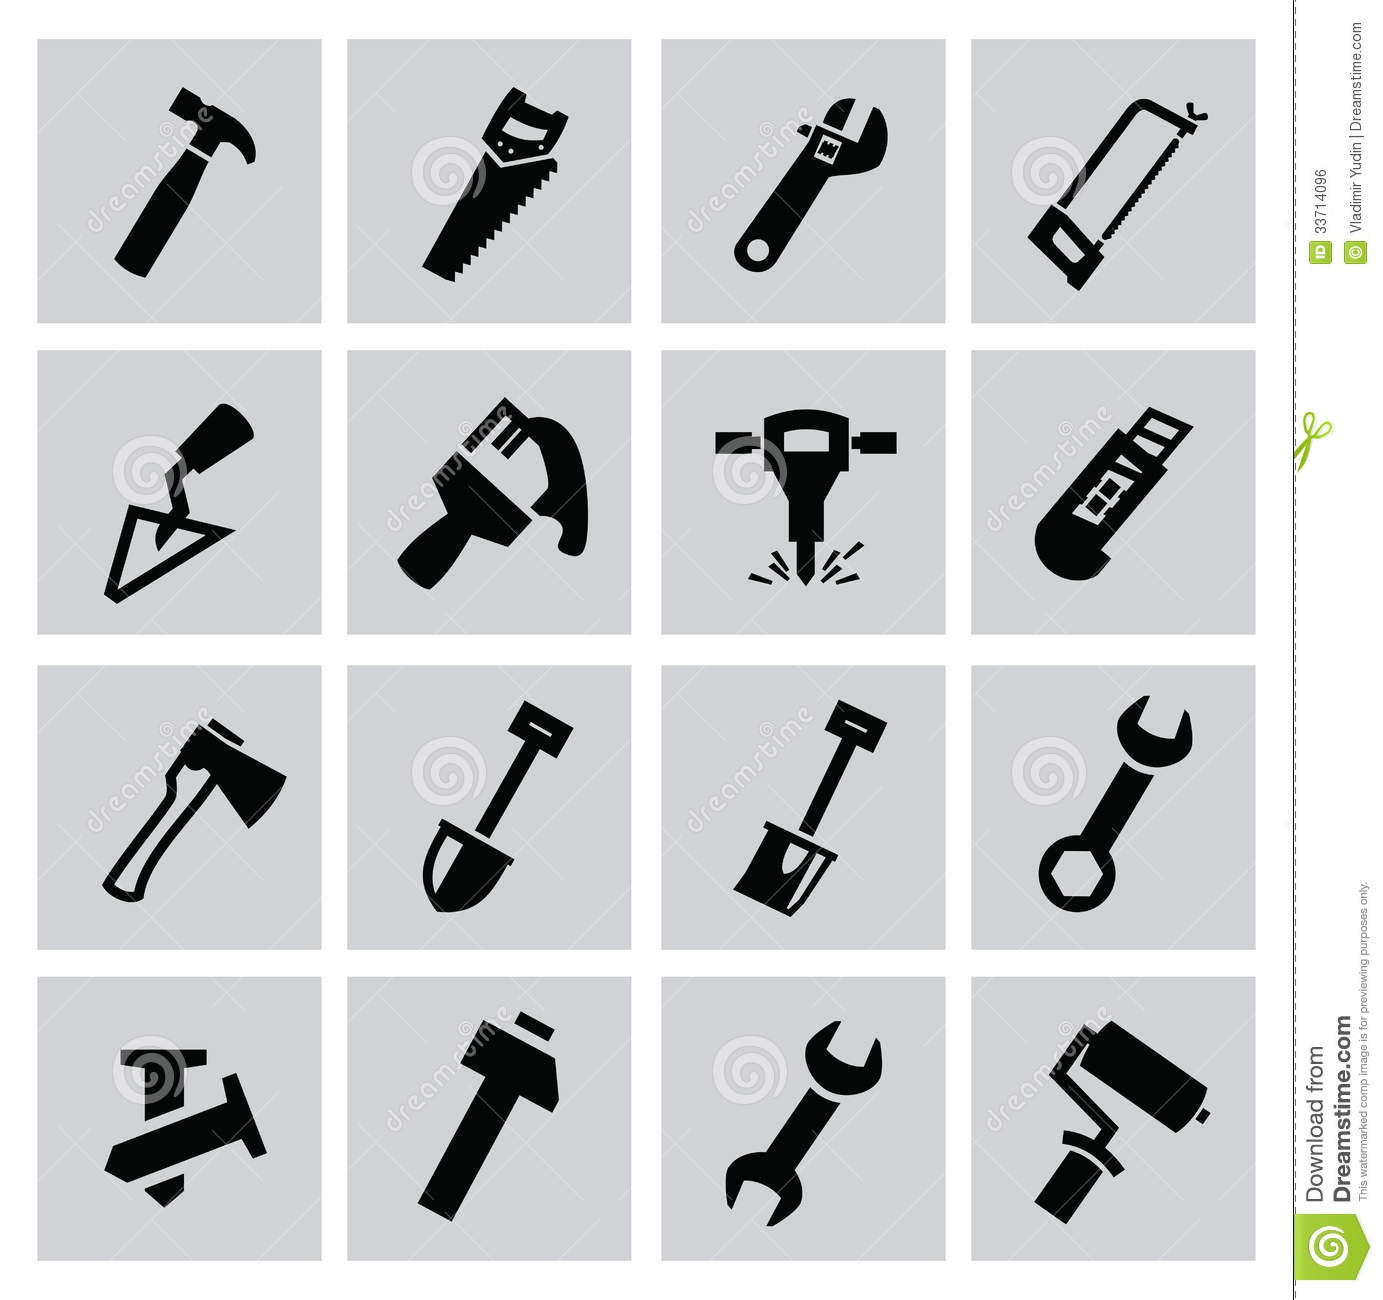 Construction Tools Royalty Free Stock Image - Image: 33714096